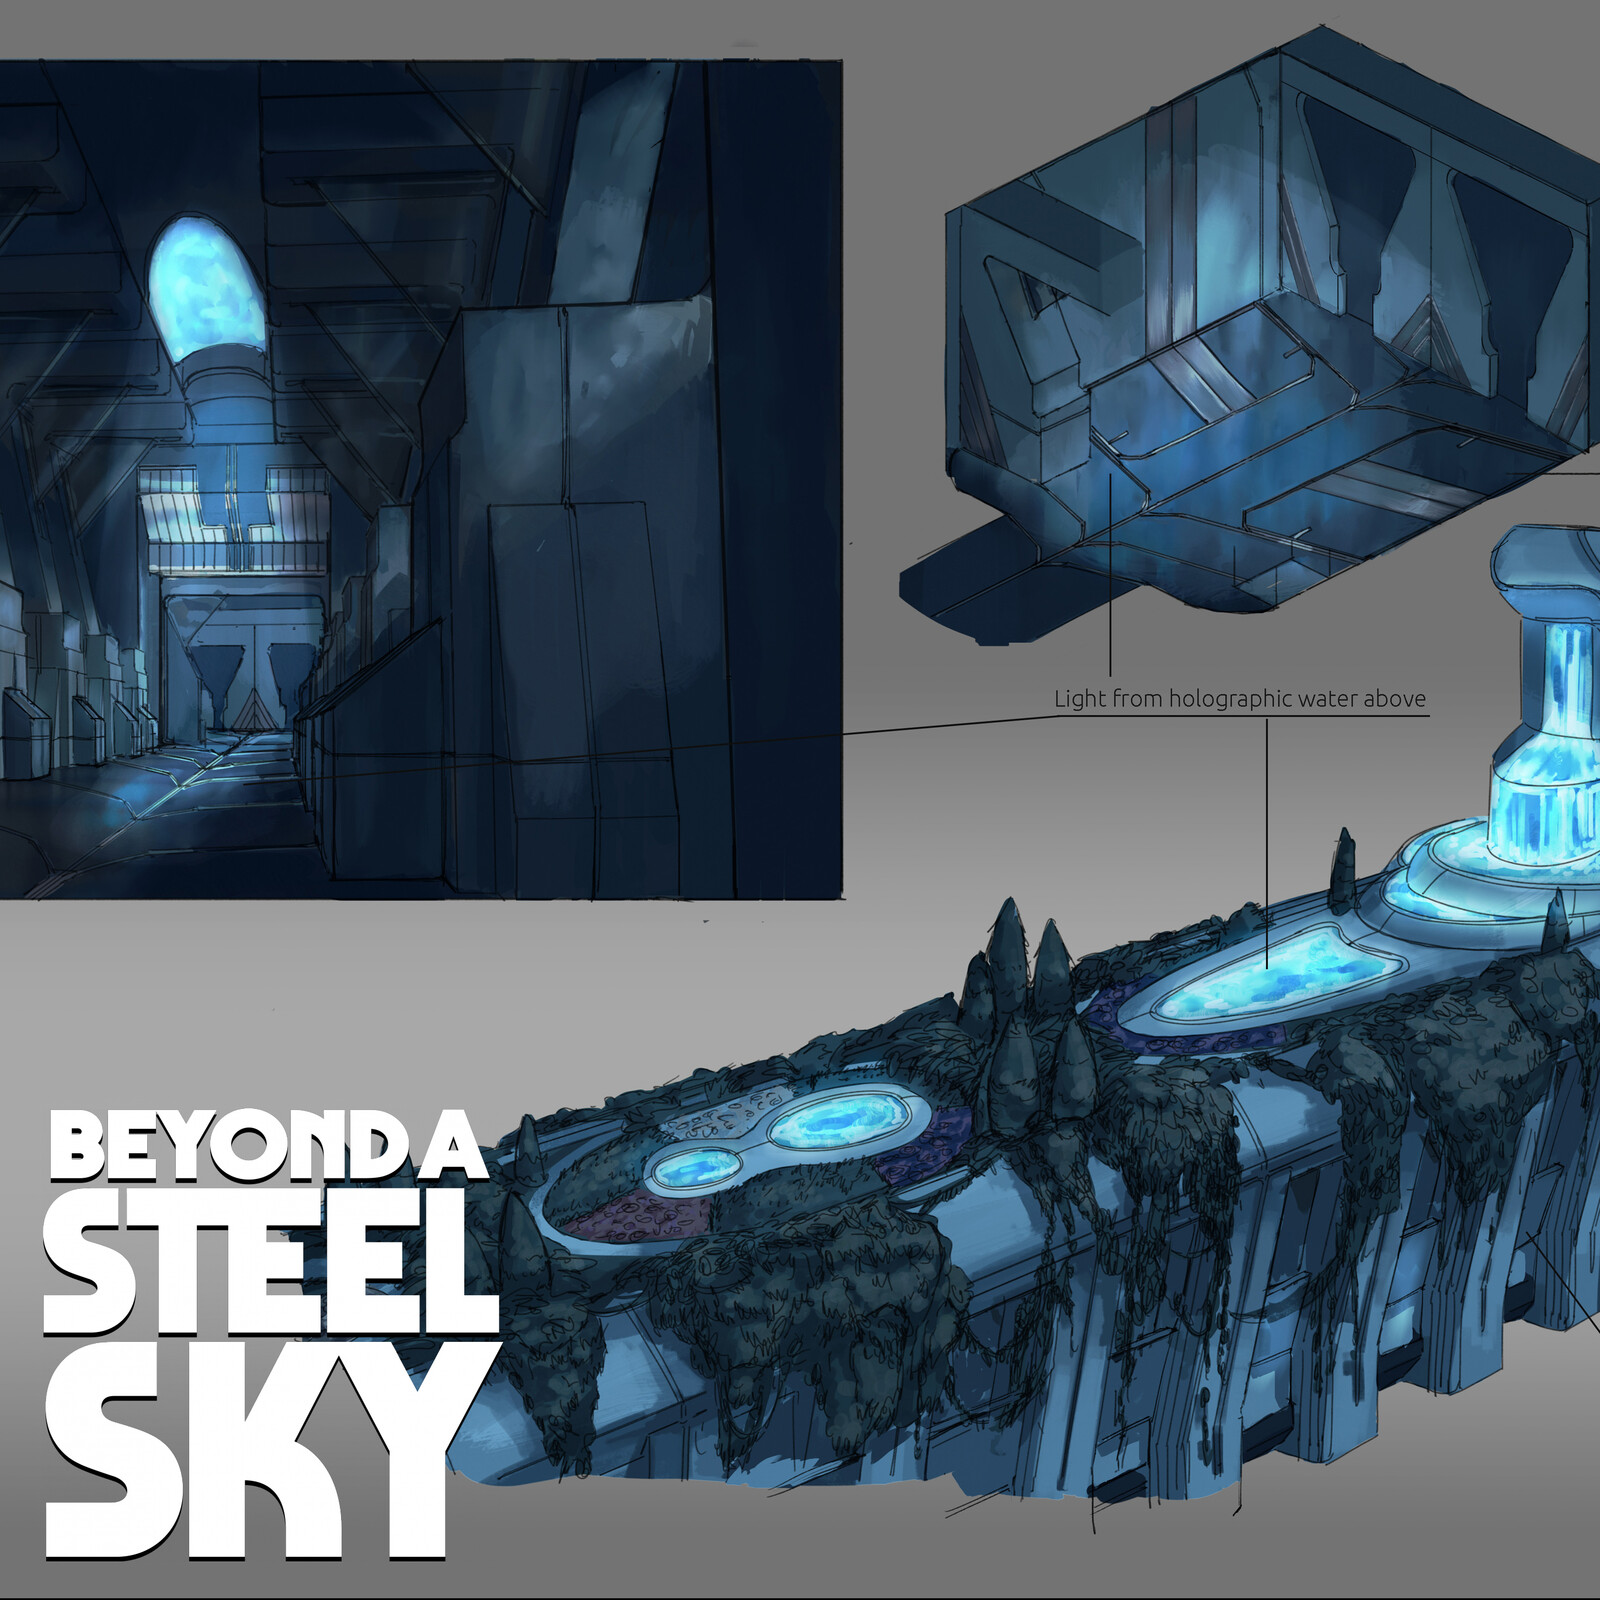 BEYOND A STEEL SKY: Creeper Bay